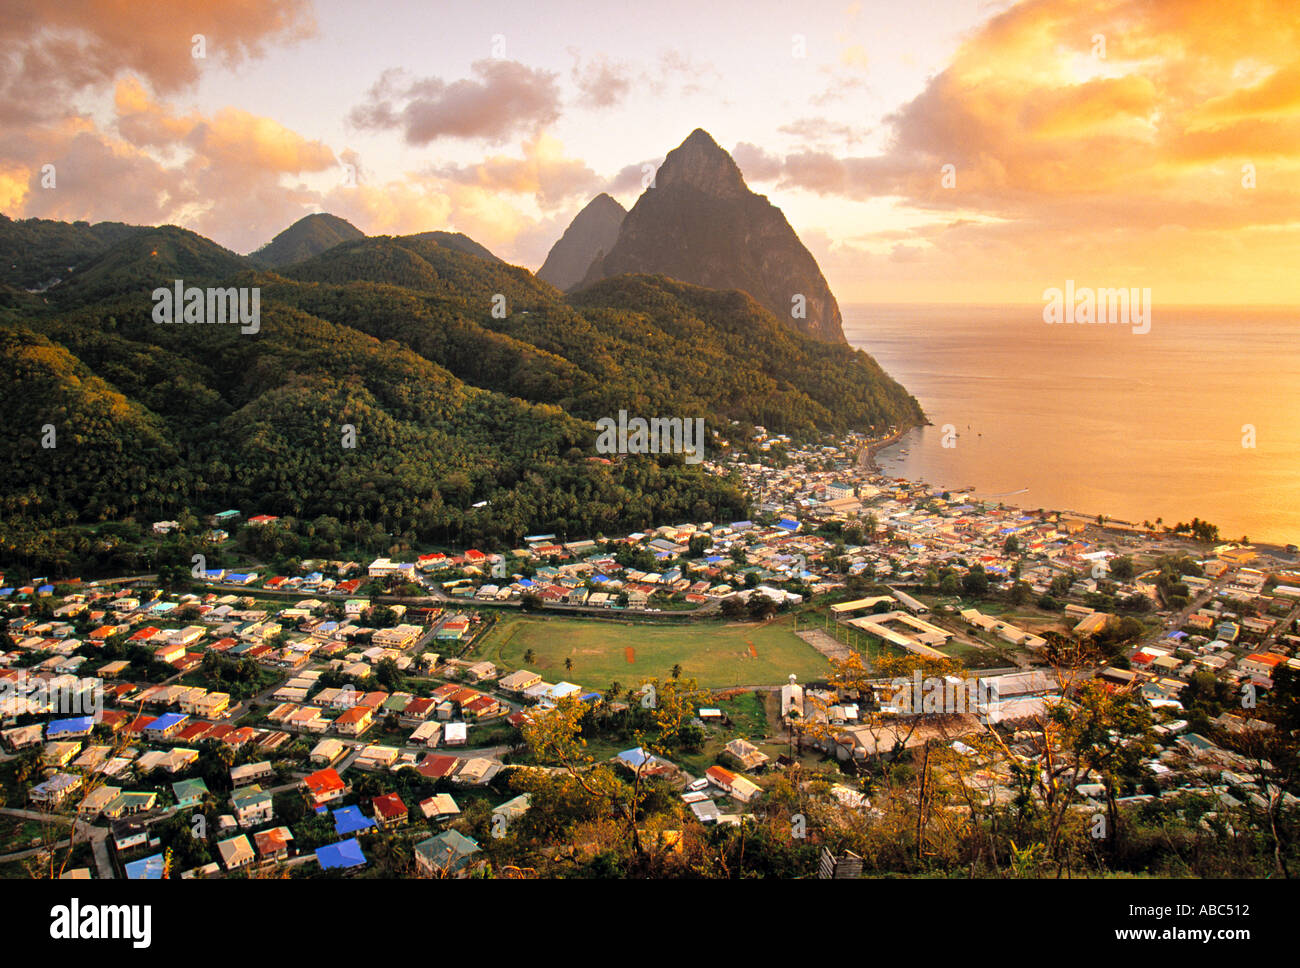 Pitons and Soufrierre, St. Lucia, Caribbean - Stock Image